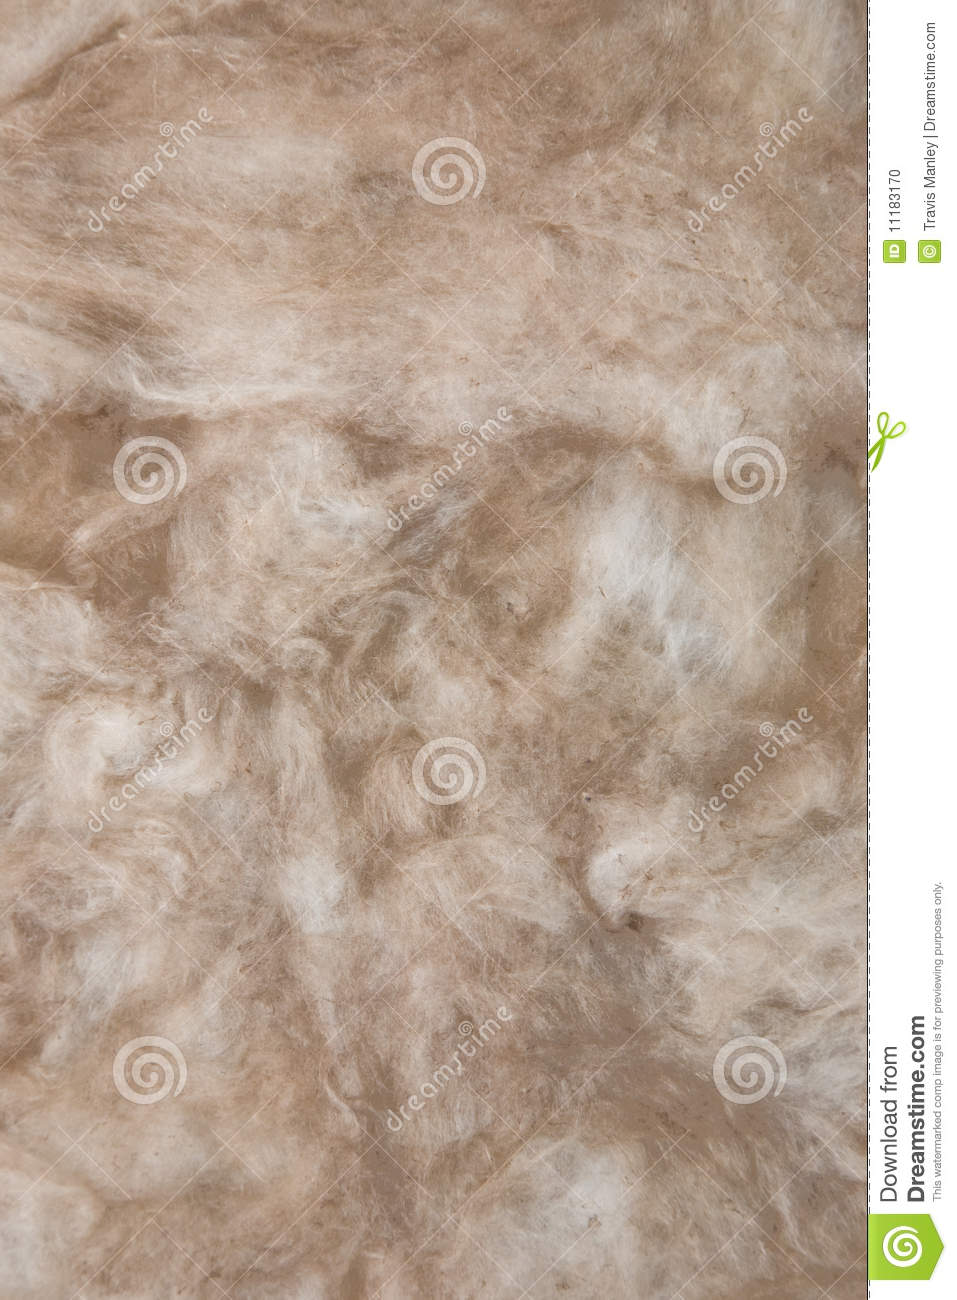 Insulation stock photo image 11183170 for Eco friendly house insulation